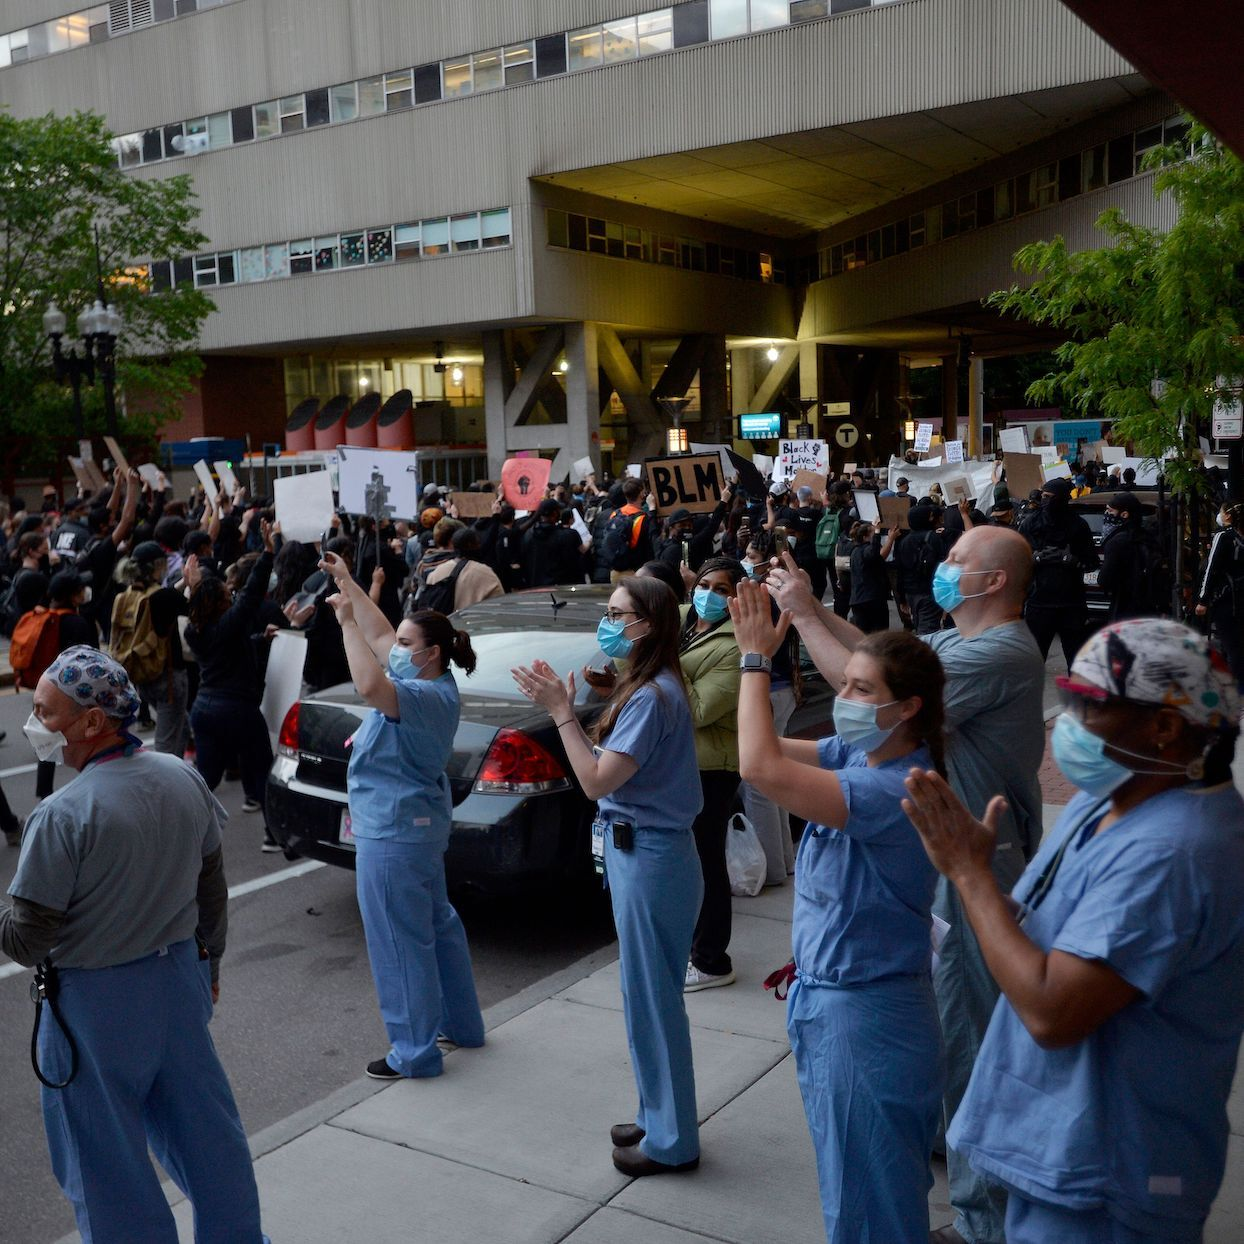 nurses-treat-injuries-black-lives-matter-protesters.jpg